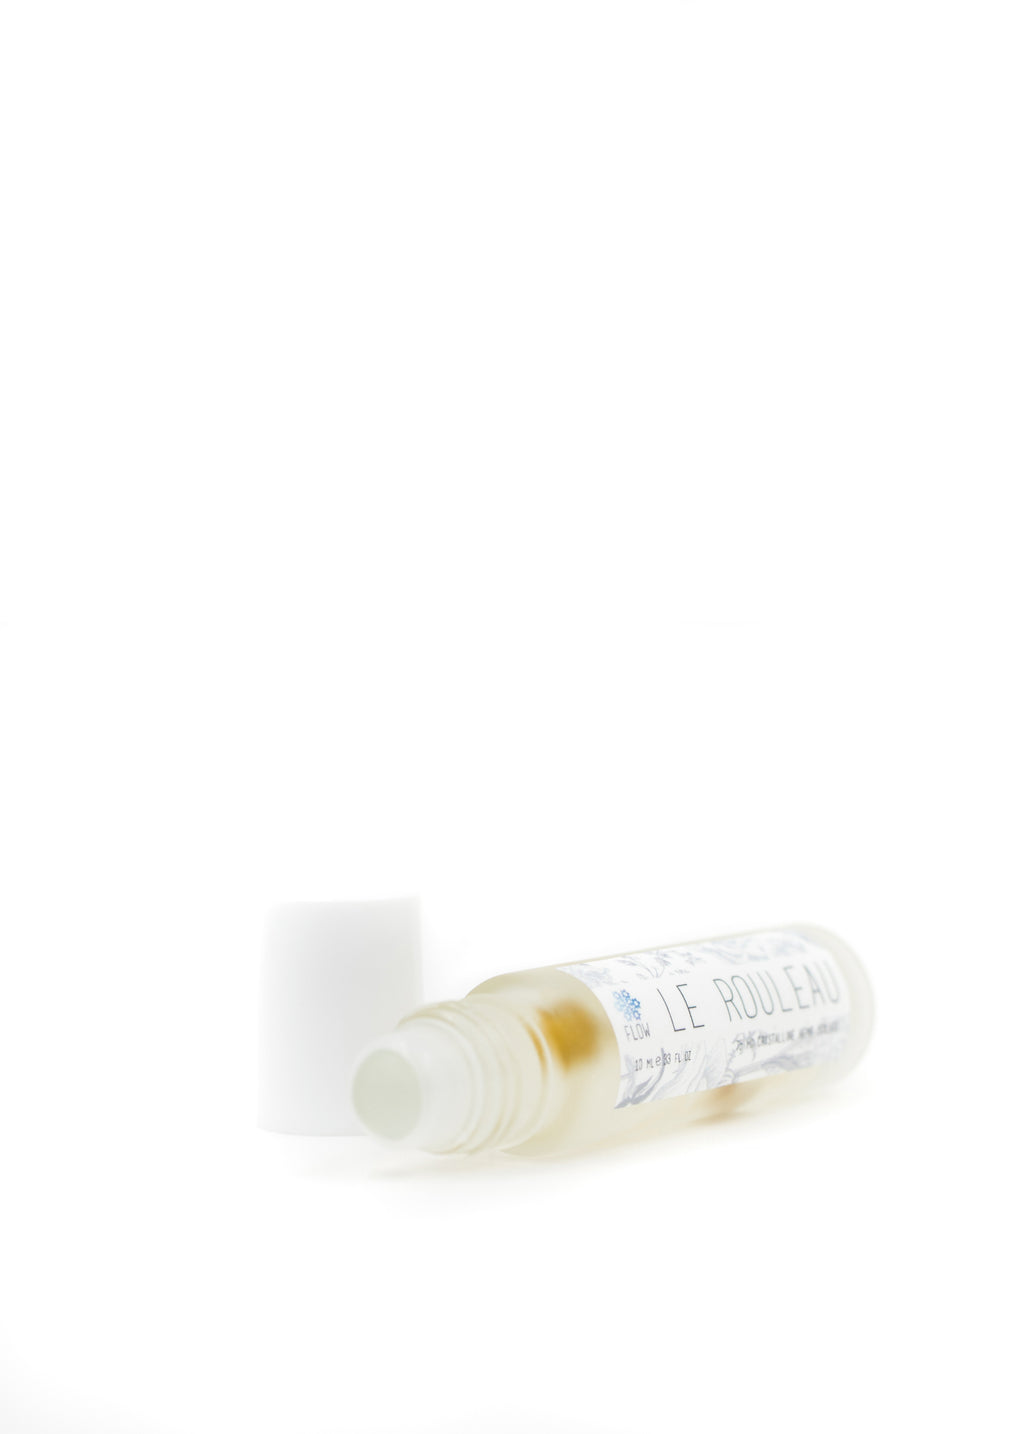 Verte Essentials Flow Oil Roller